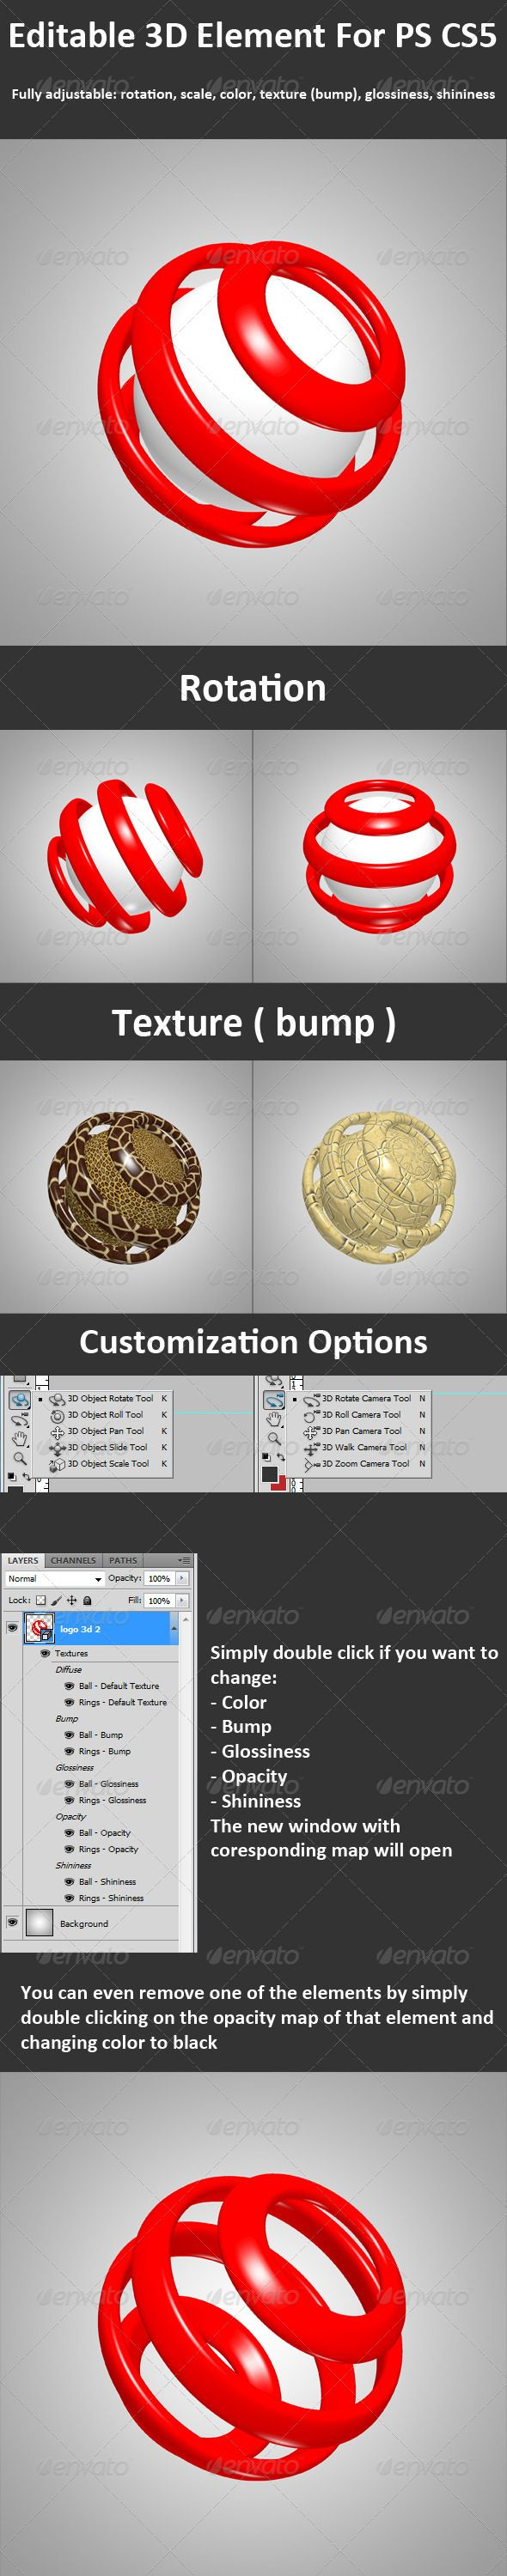 3D Element ( Layer ) For PS CS5, Full 3d Options  #GraphicRiver        Fully customizable 3d element, layer for CS5 Extended You can:   Rotate it  Scale it  Color it, separated color/texture maps for both of the elements  Apply Texture, bump map for that texture  Adjust Shine, Gloss, Opacity, bump  Erase one of the elements by simply changing opacity color to black  Customization is done by simply double clicking on corresponding map in layer  Resolution: 2500×2500 Format: Psd ( layered )…